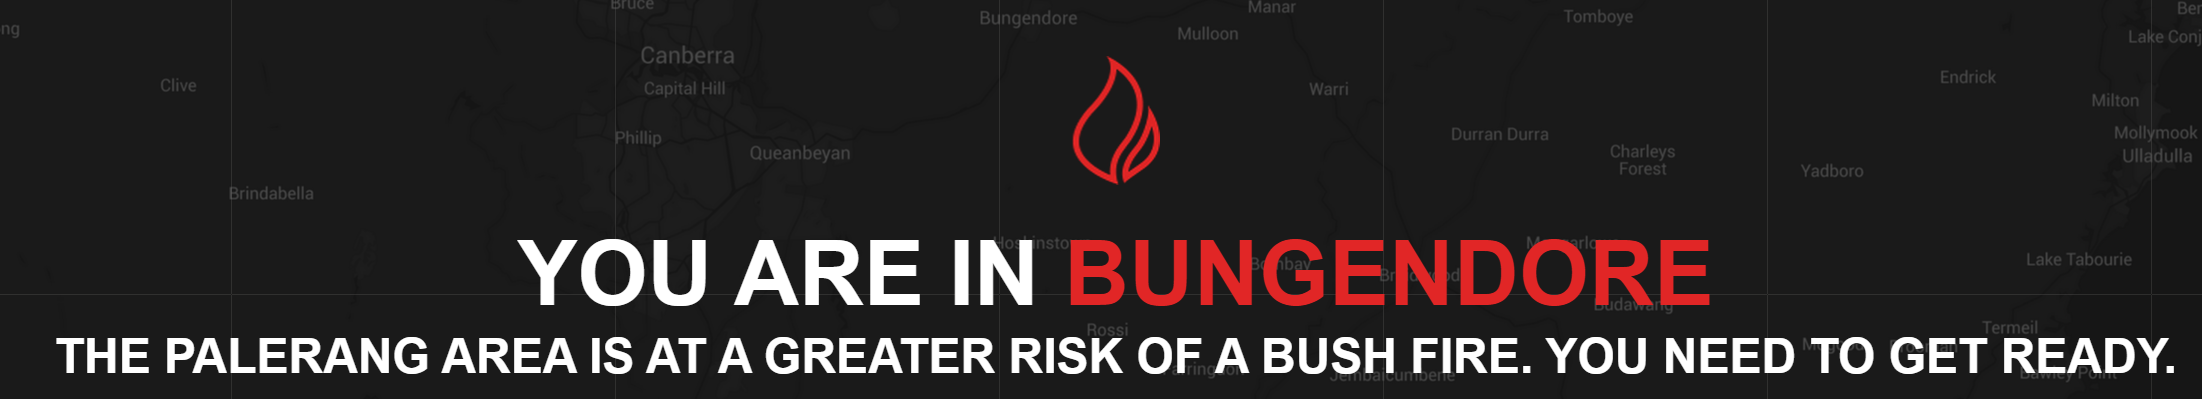 Bungendore Fire Risk.PNG